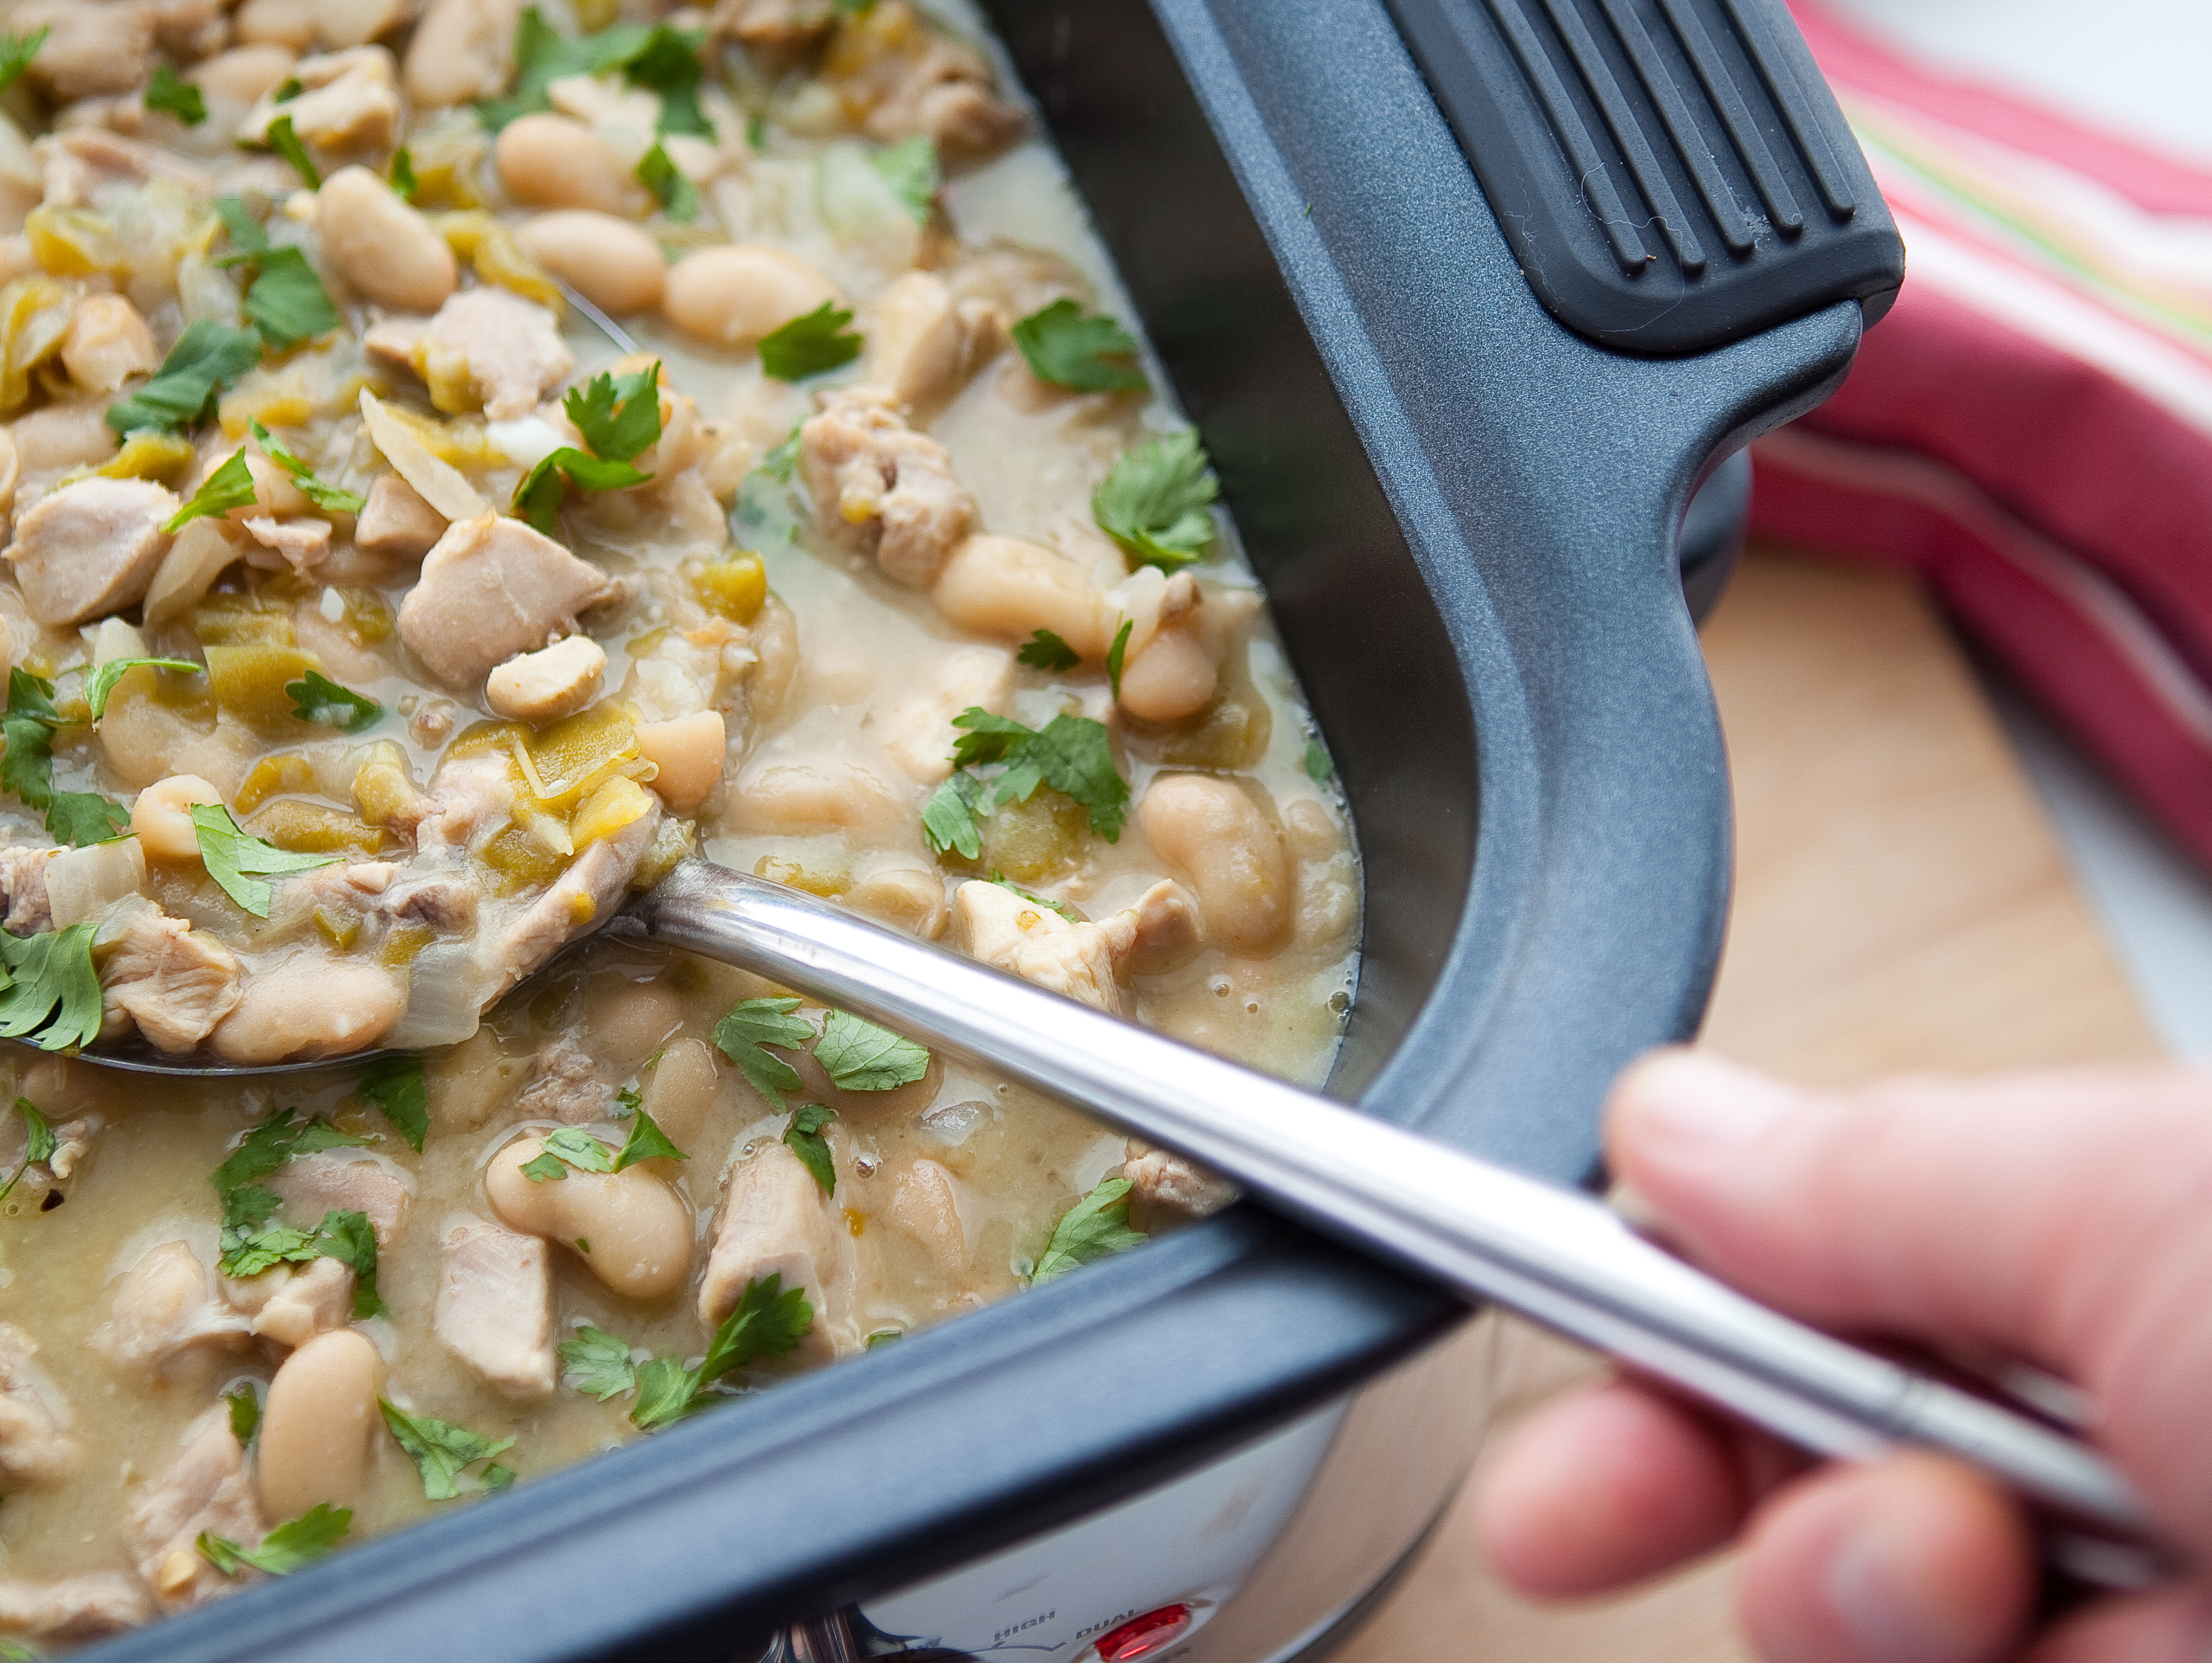 In the kitchen with Kelley: Slow cooker chicken soup with white beans and spinach